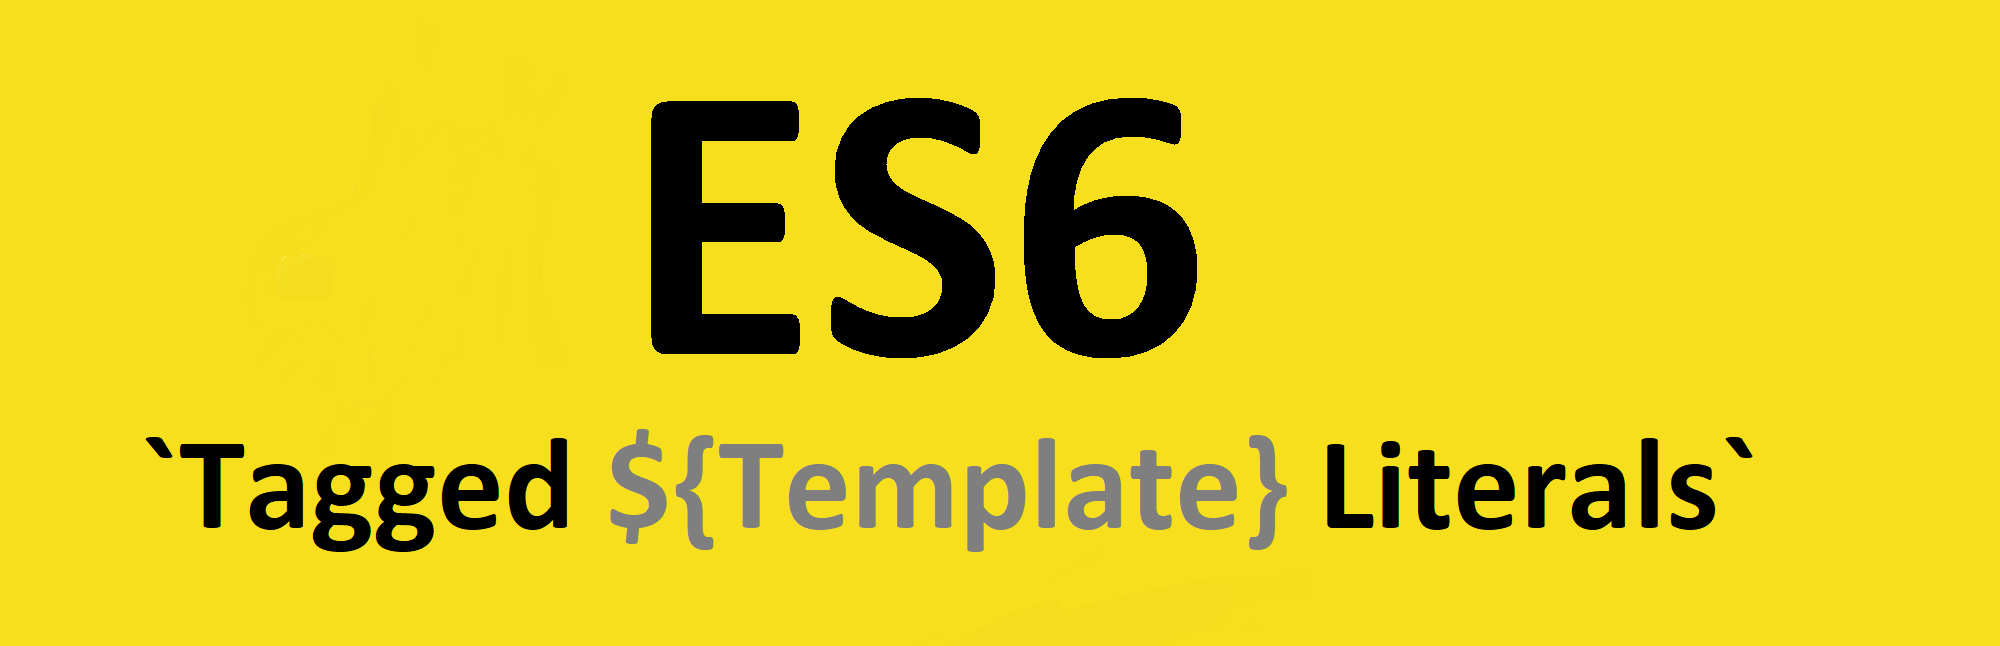 Es6 Tagged Template Literals Freecodecamp